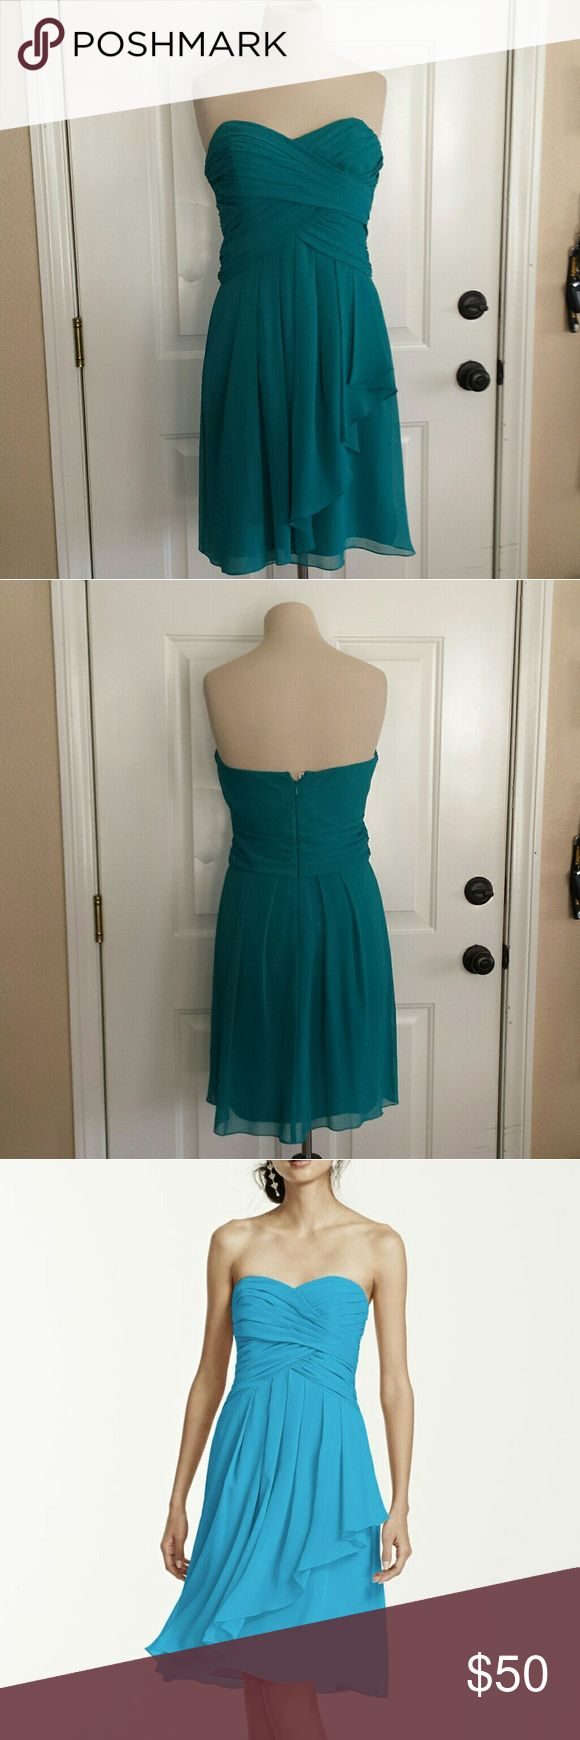 David's Bridal Teal Chiffon Bridesmaid's Dress Worn once as a maid of honor. Size 6 but a strap was added by a seamstress to make it tighter. Can be removed if needed. It is hidden. Color is called Malibu.   Wear marks pictured are on the inside so you can't see them when worn.   #bridesmaid #dress #strapless #sweetheart #chiffon #light #classy #airy #loose #flattering #slimming #curves #flowing #fauxwrap #spring #summer #fall #winter #anytime #event #party #cocktail #homecoming…